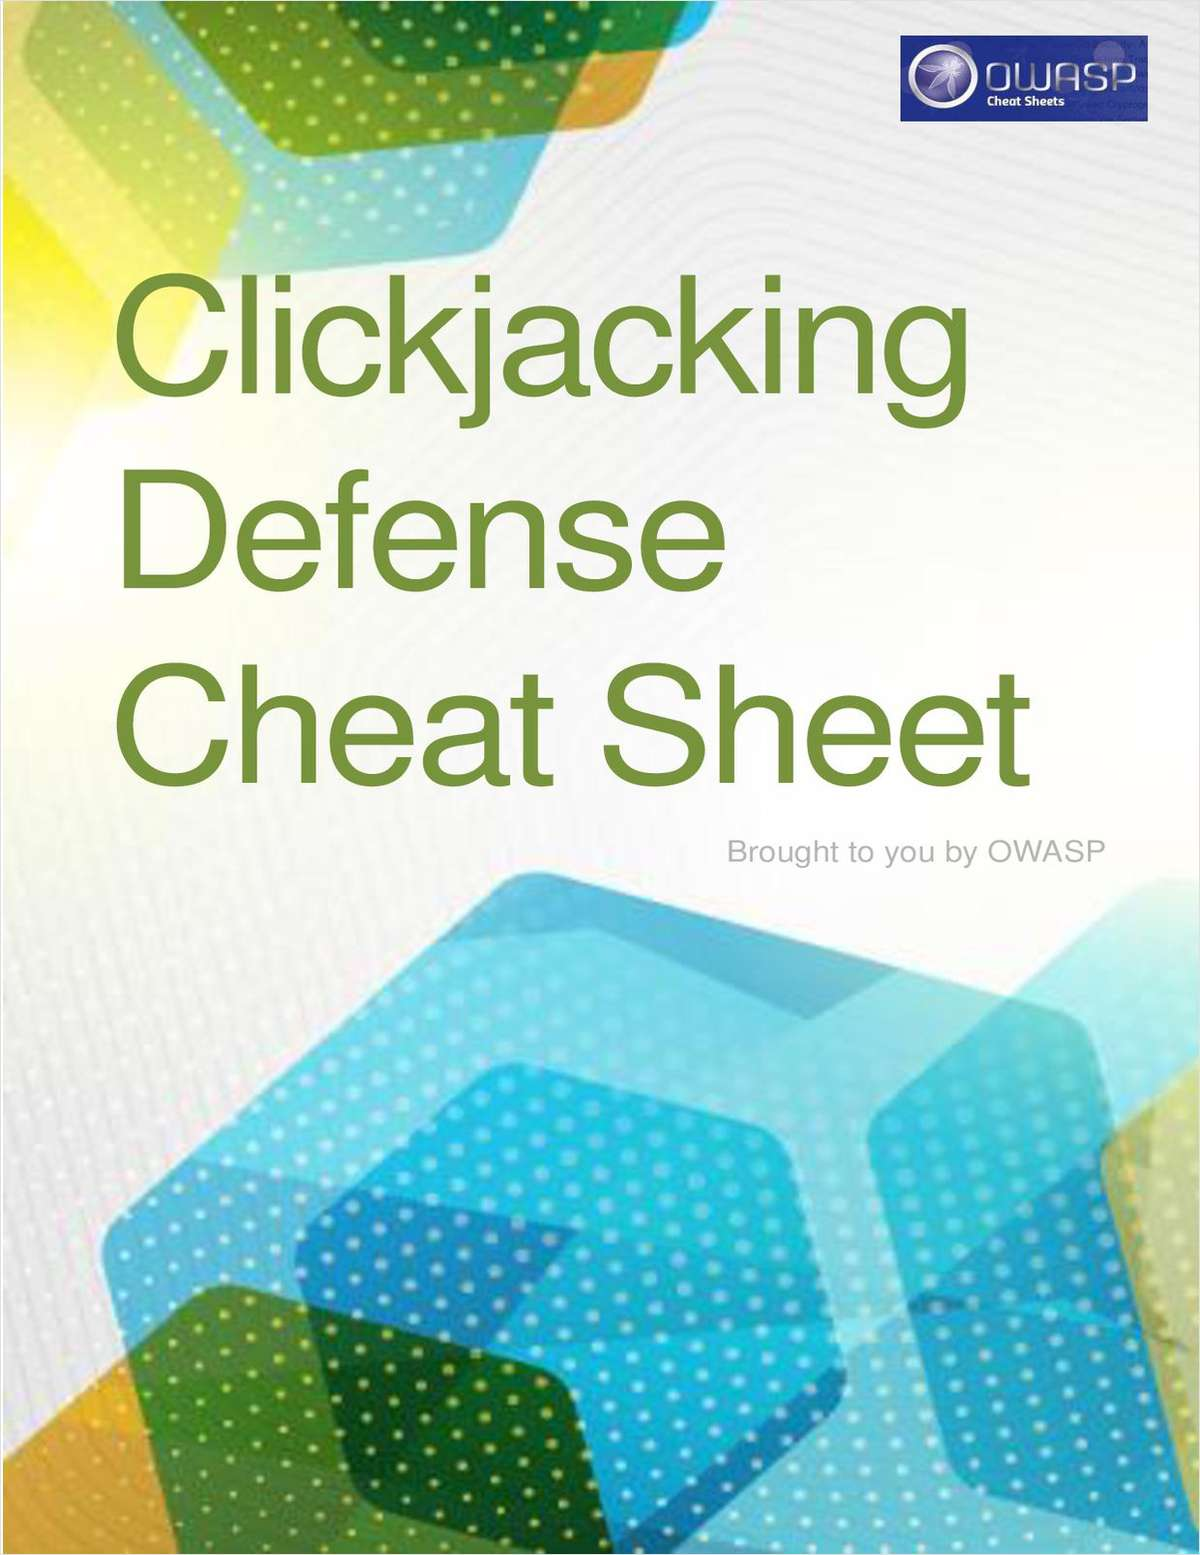 Clickjacking Defense Cheat Sheet